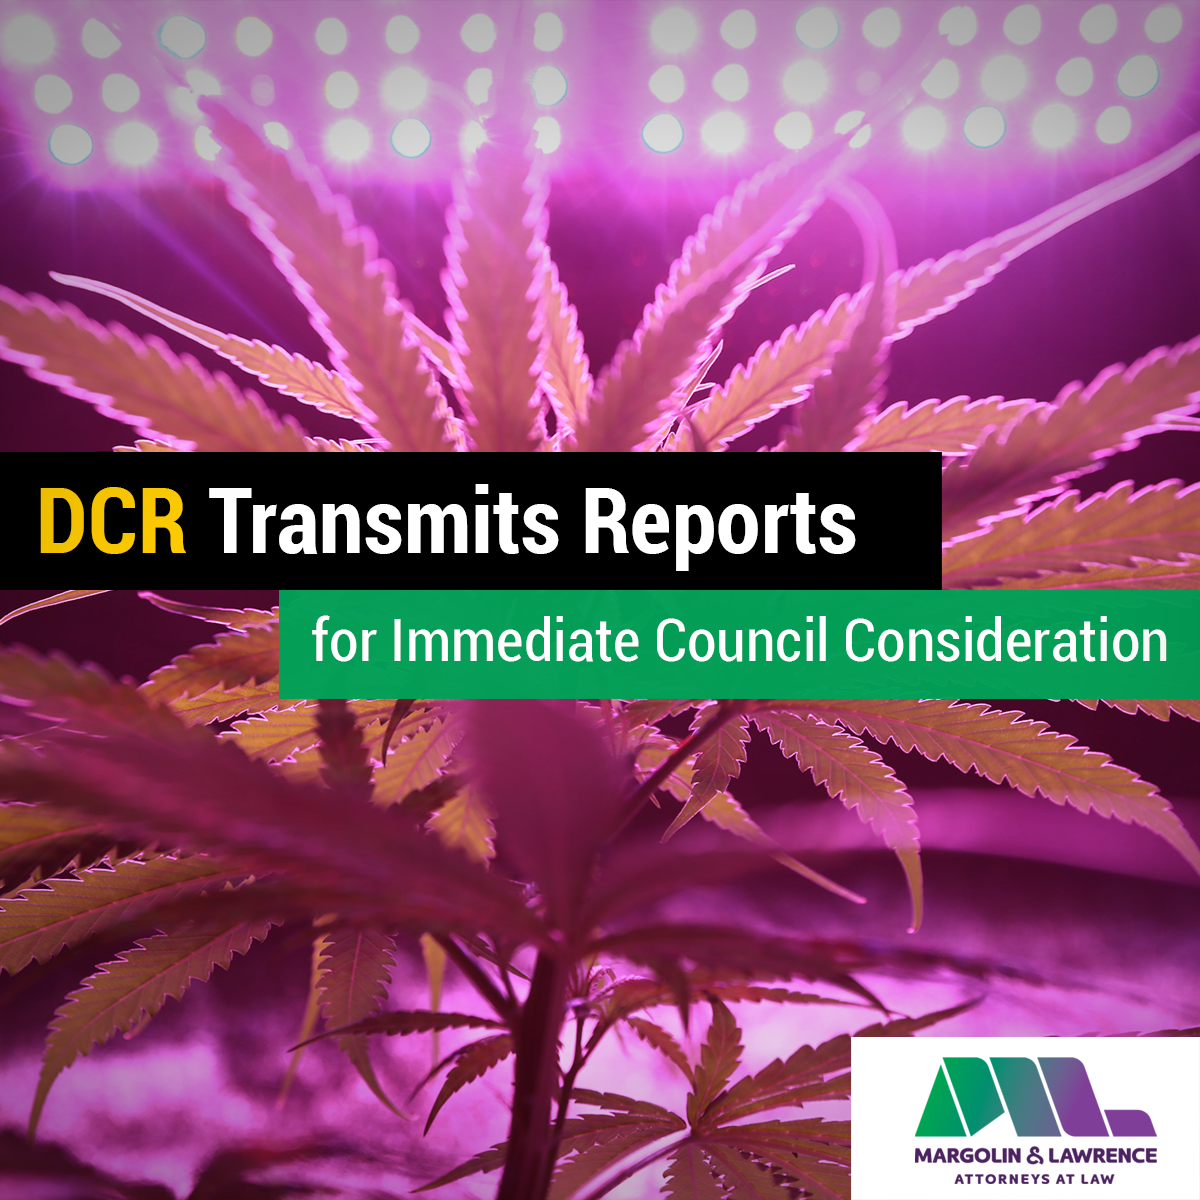 DCR Transmits Reports for Immediate Council Consideration